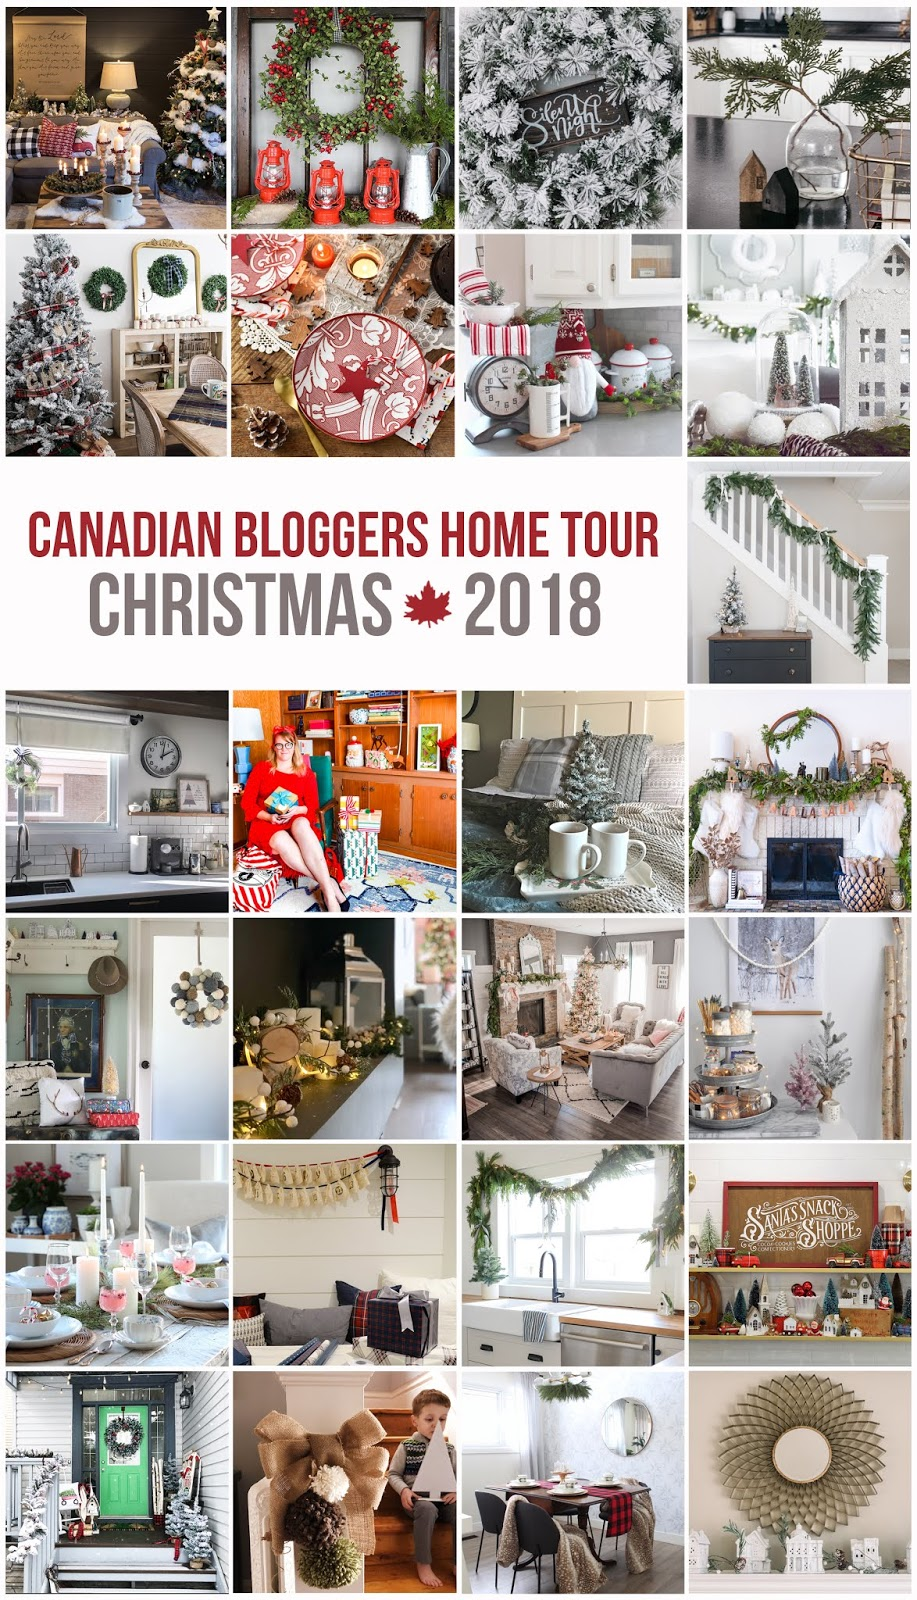 Canadian Bloggers Home Tour Christmas 2018 collage of contributors